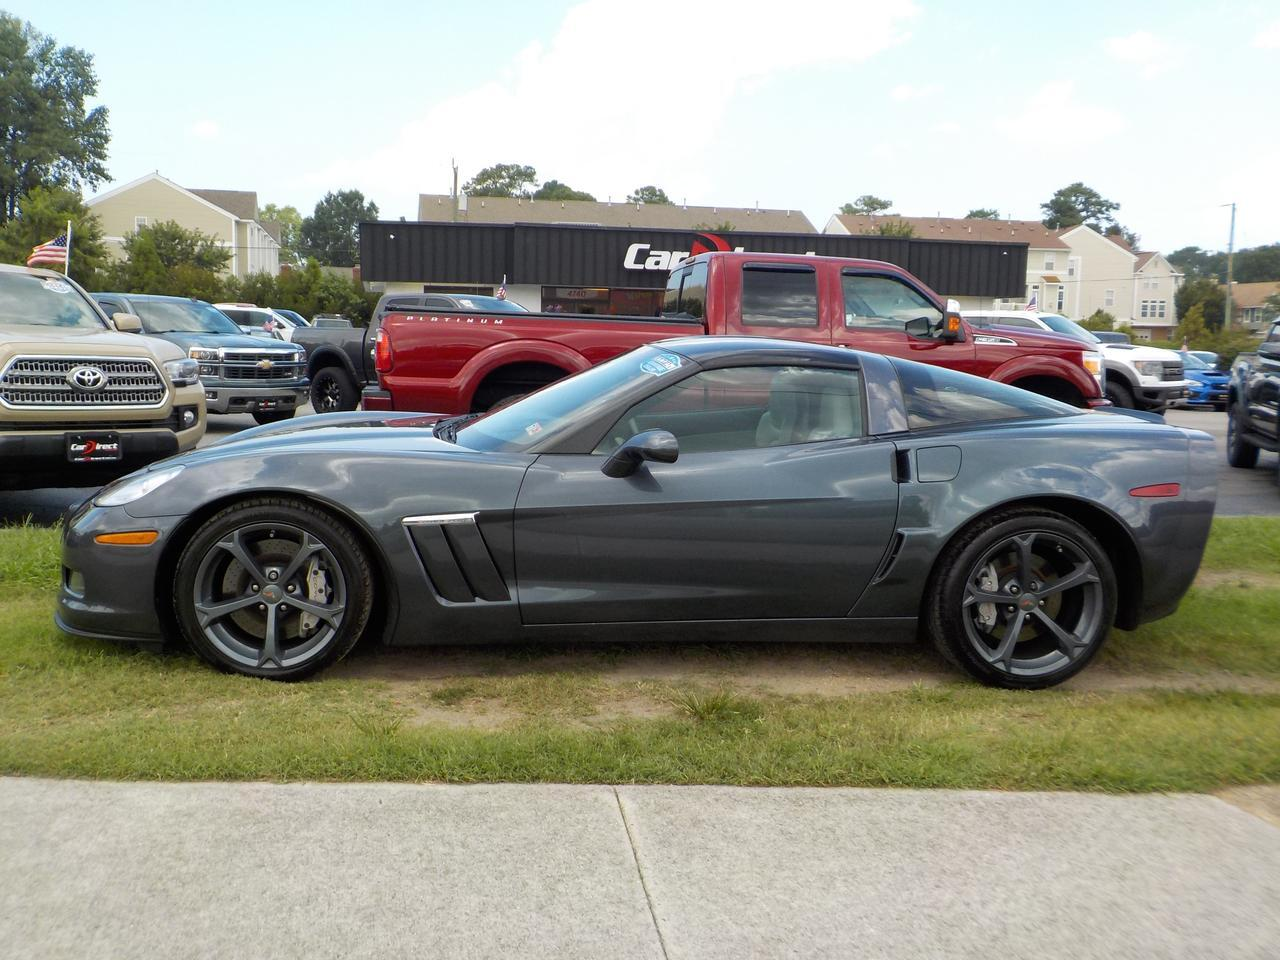 2012 CHEVROLET CORVETTE GRAND SPORT 3LT, LEATHER, HEATED SEATS, SUNROOF, BOSE SOUND, LOW MILES, CLEAN CARFAX! Virginia Beach VA